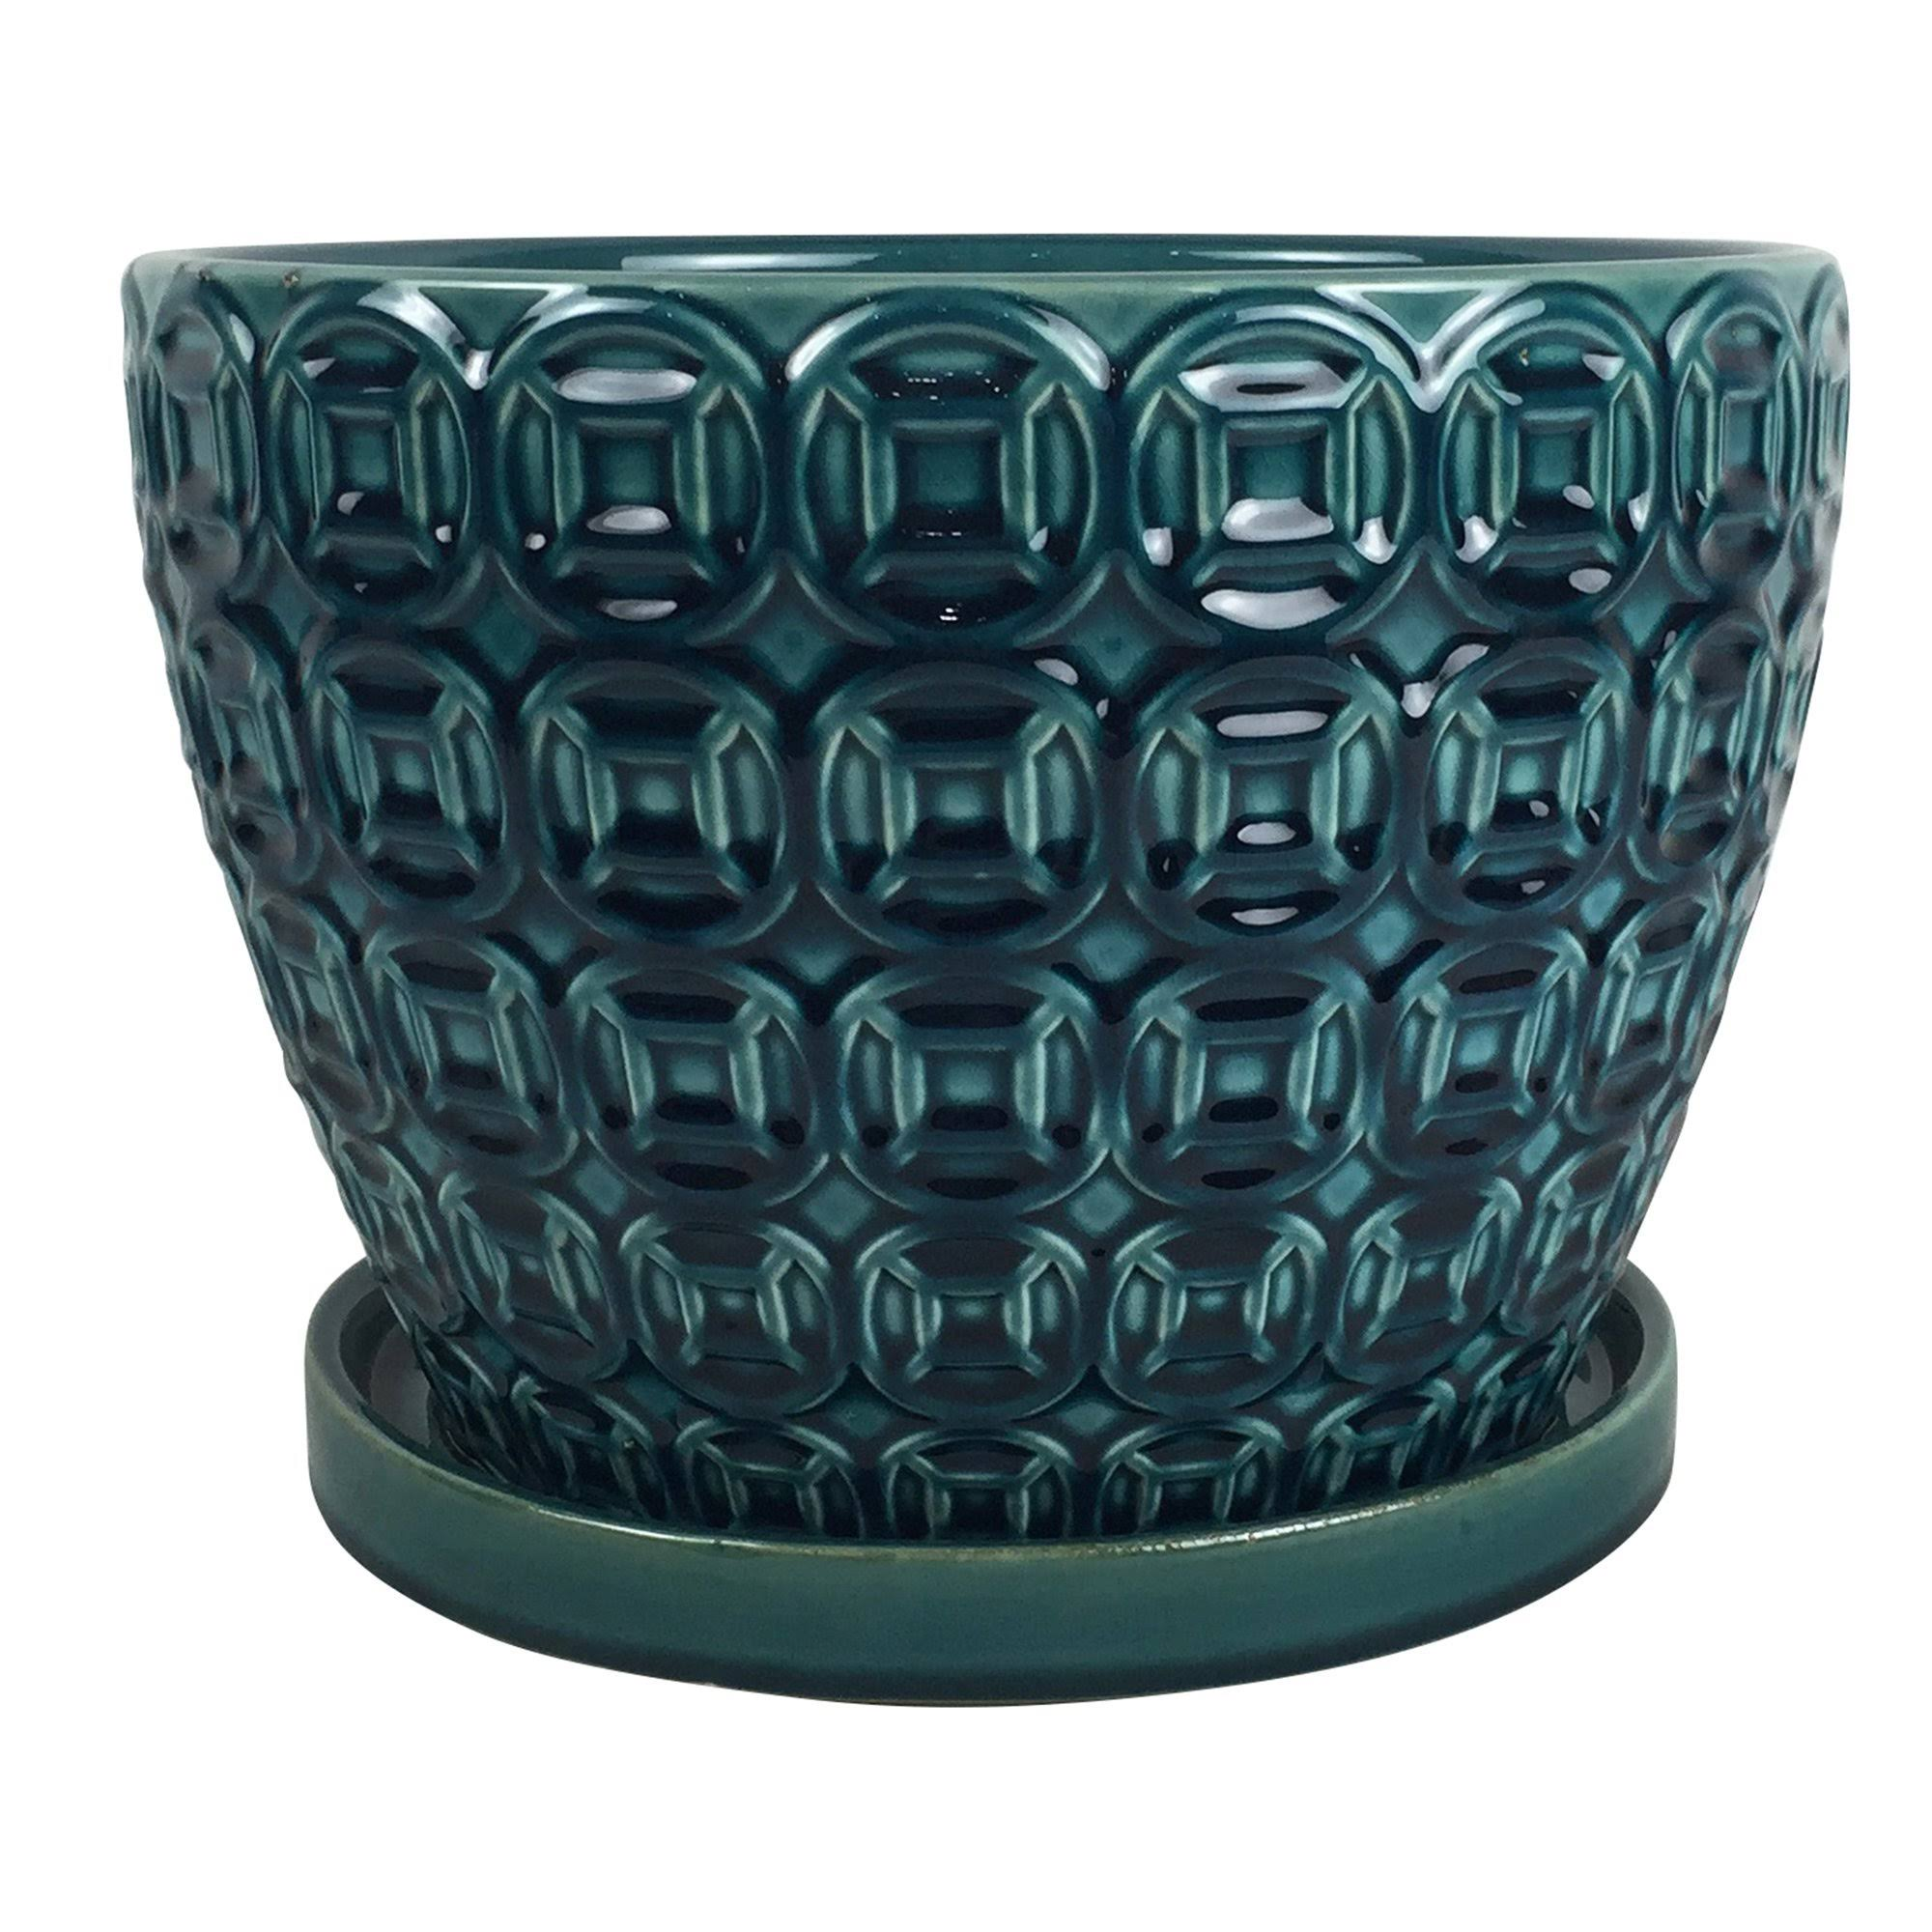 Southern Patio Mayer Seafoam Ceramic Pot - Blue, 12""